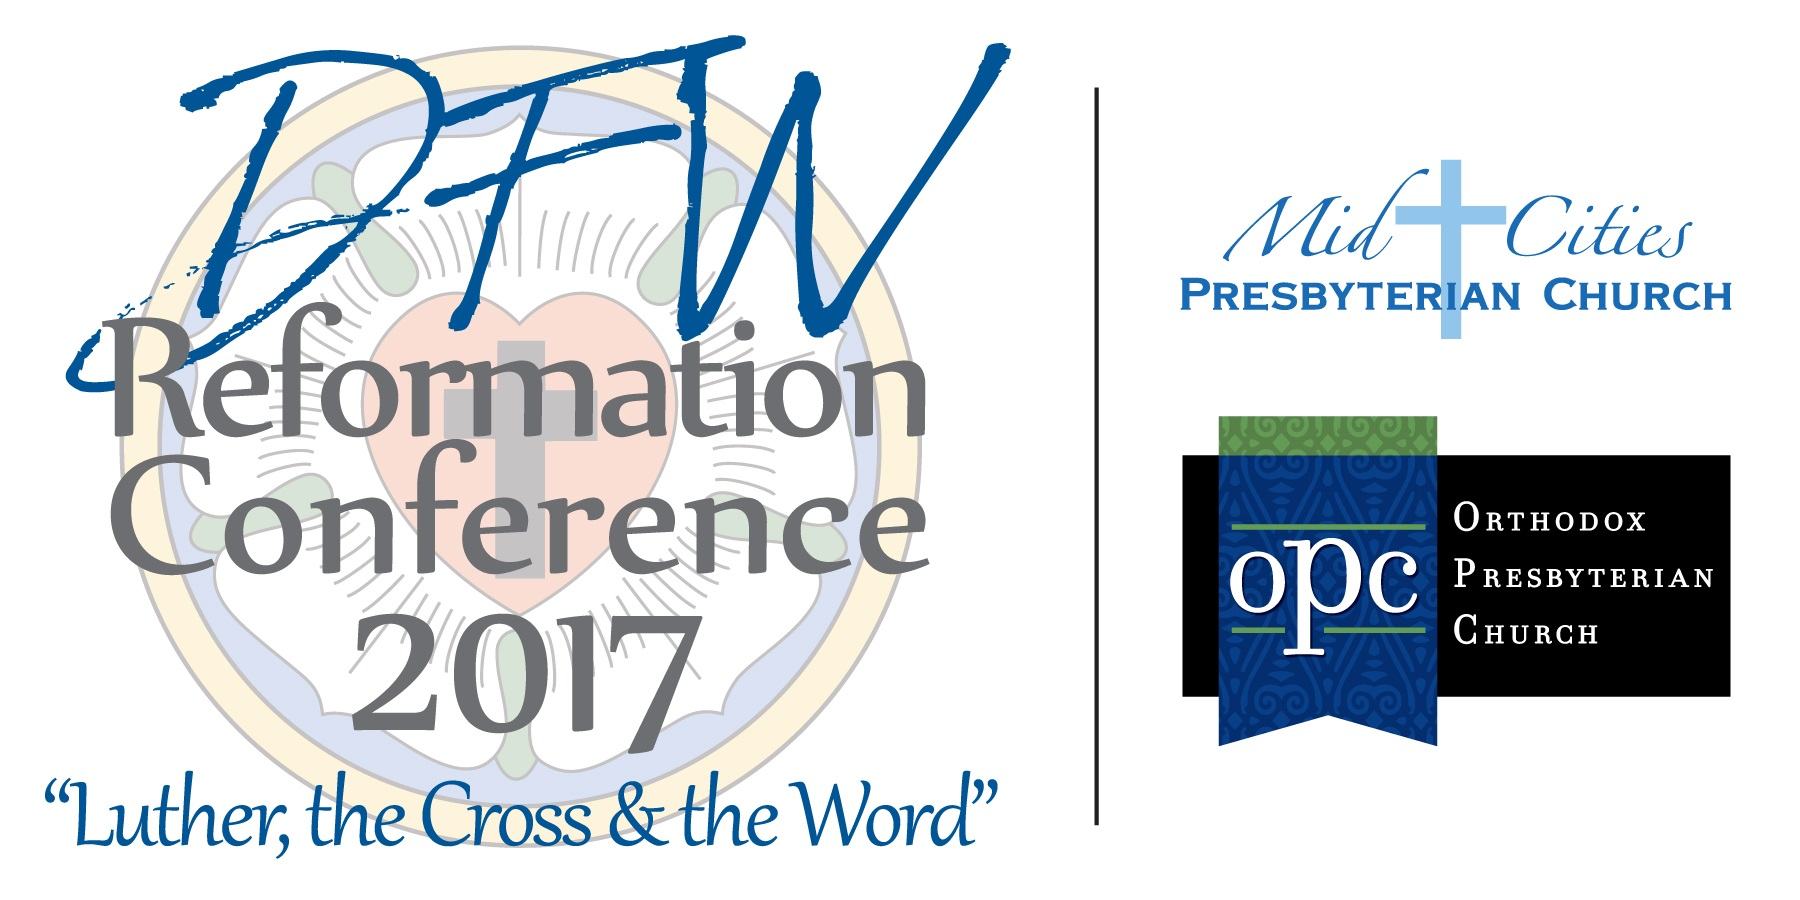 Luther, the Cross and the Word | DFW Reformation Conference 2017